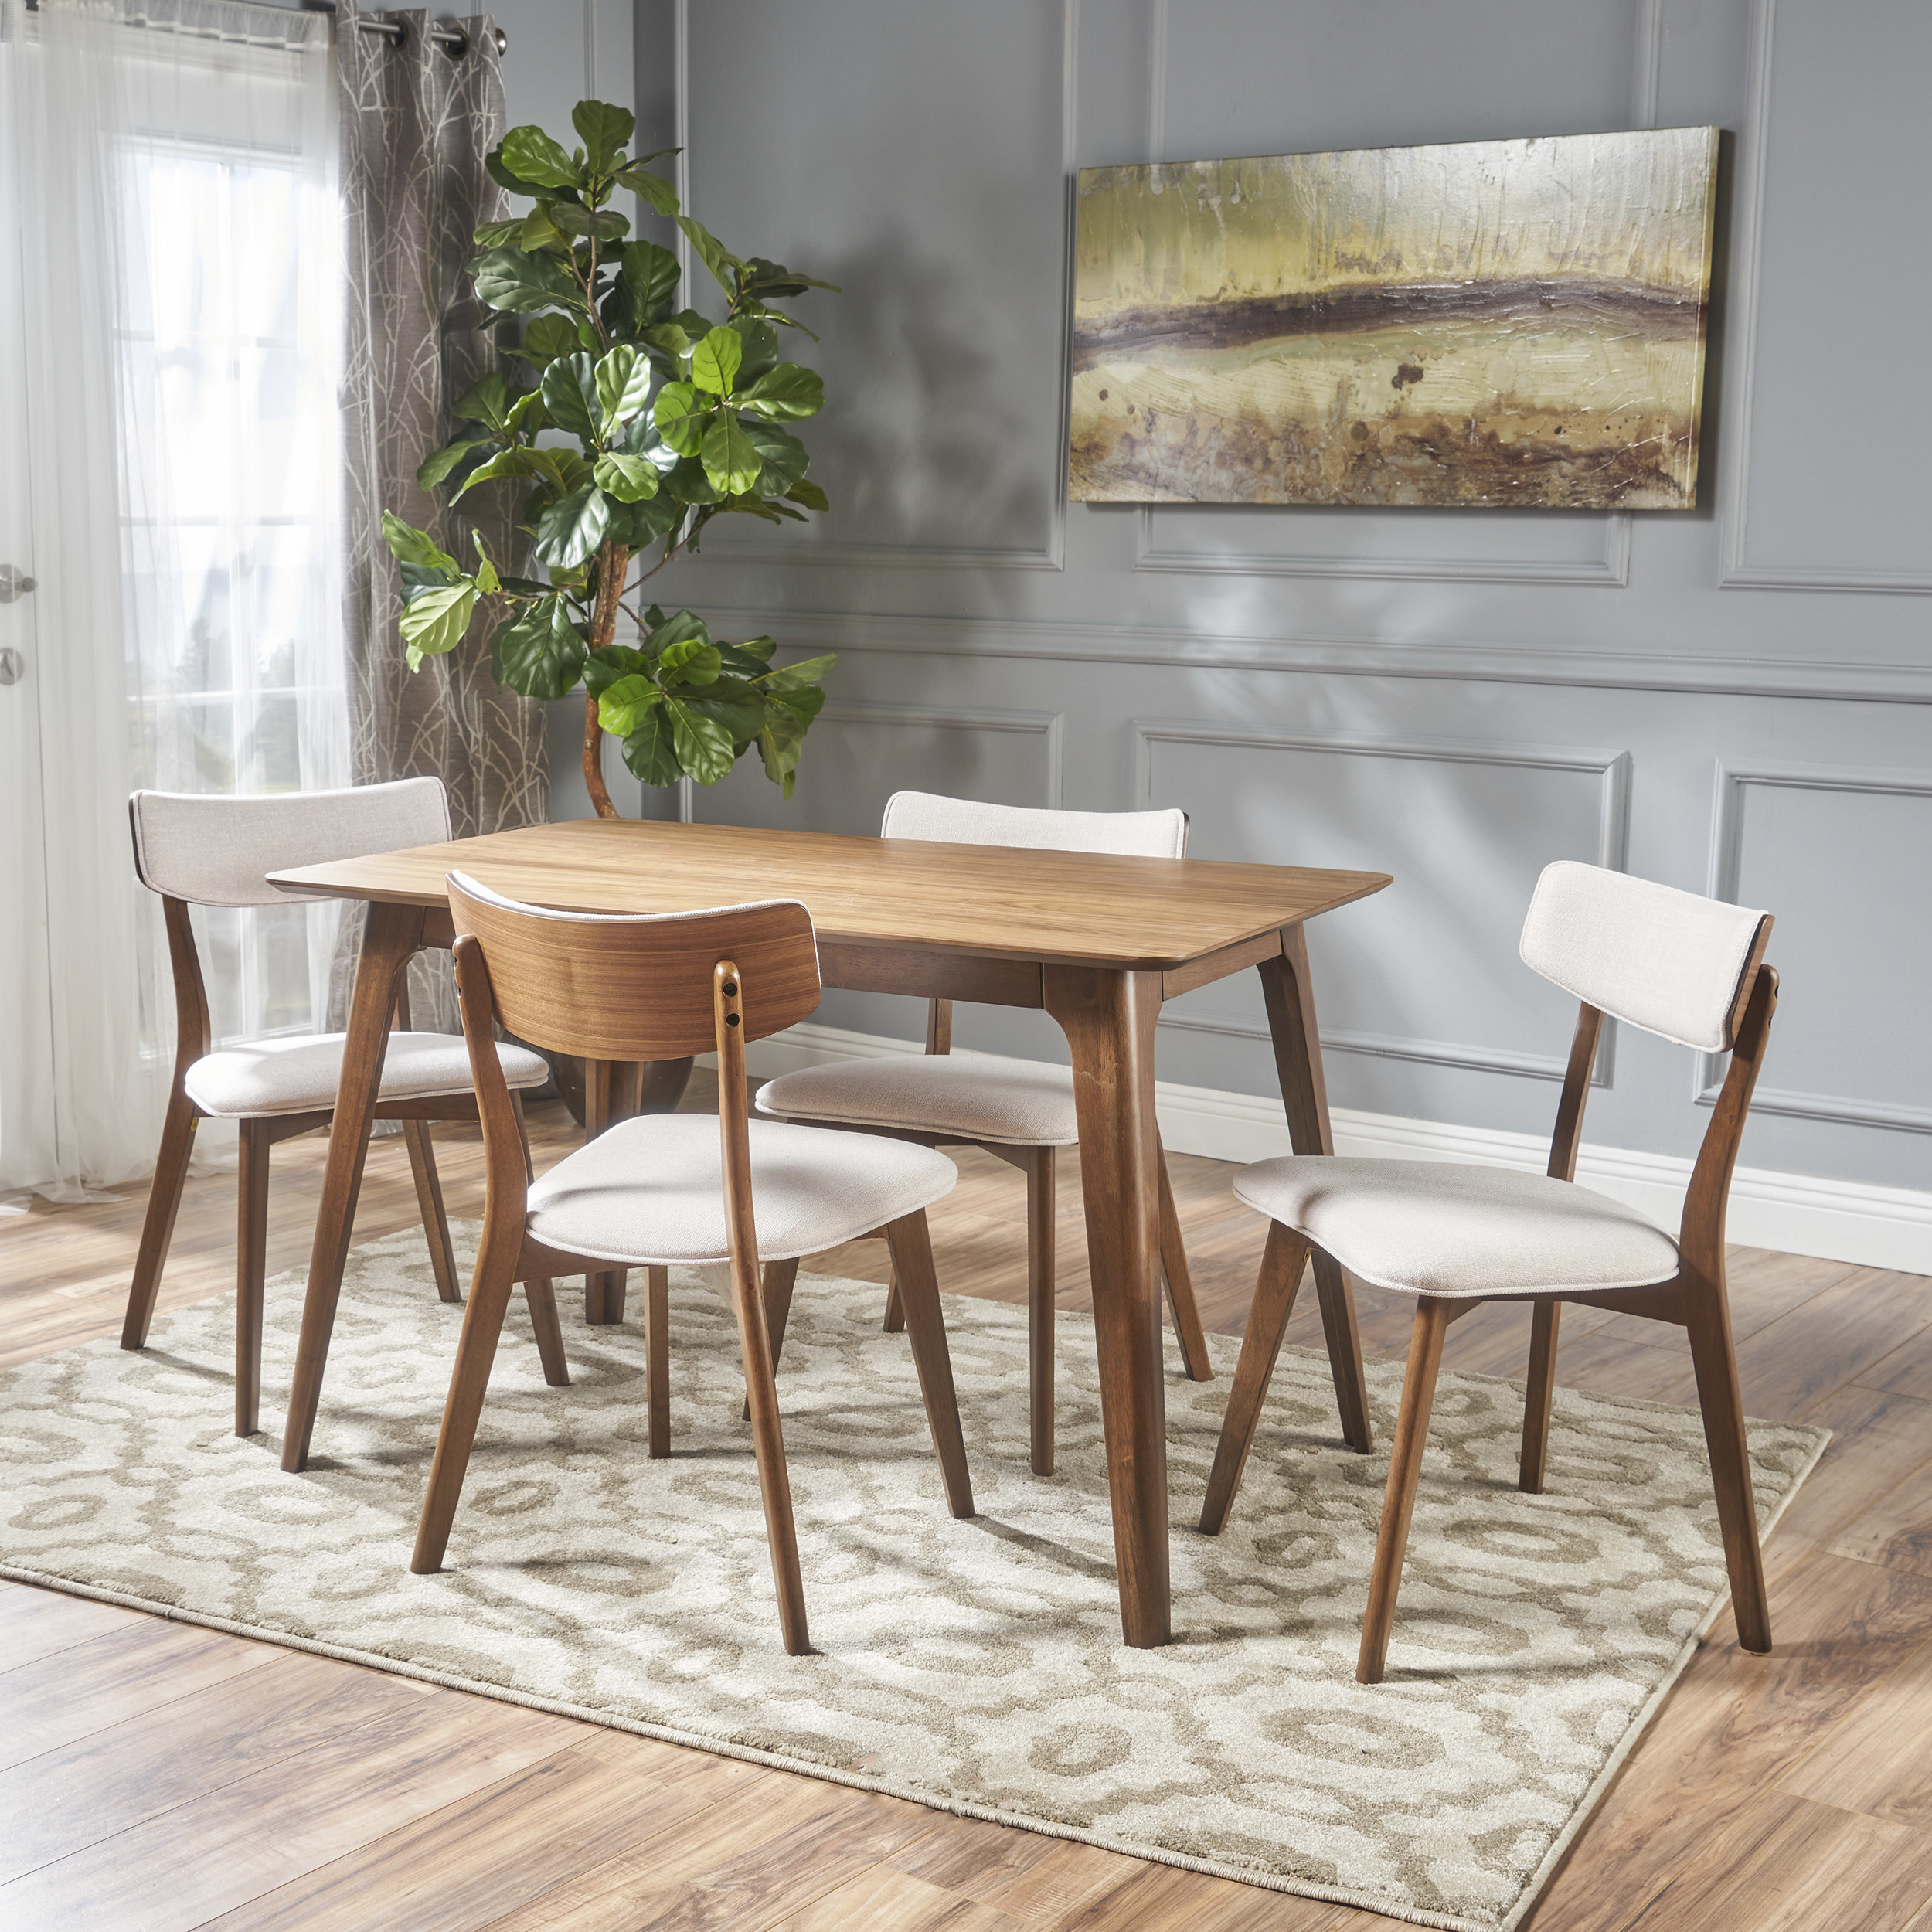 The light brown dining set in a dining room